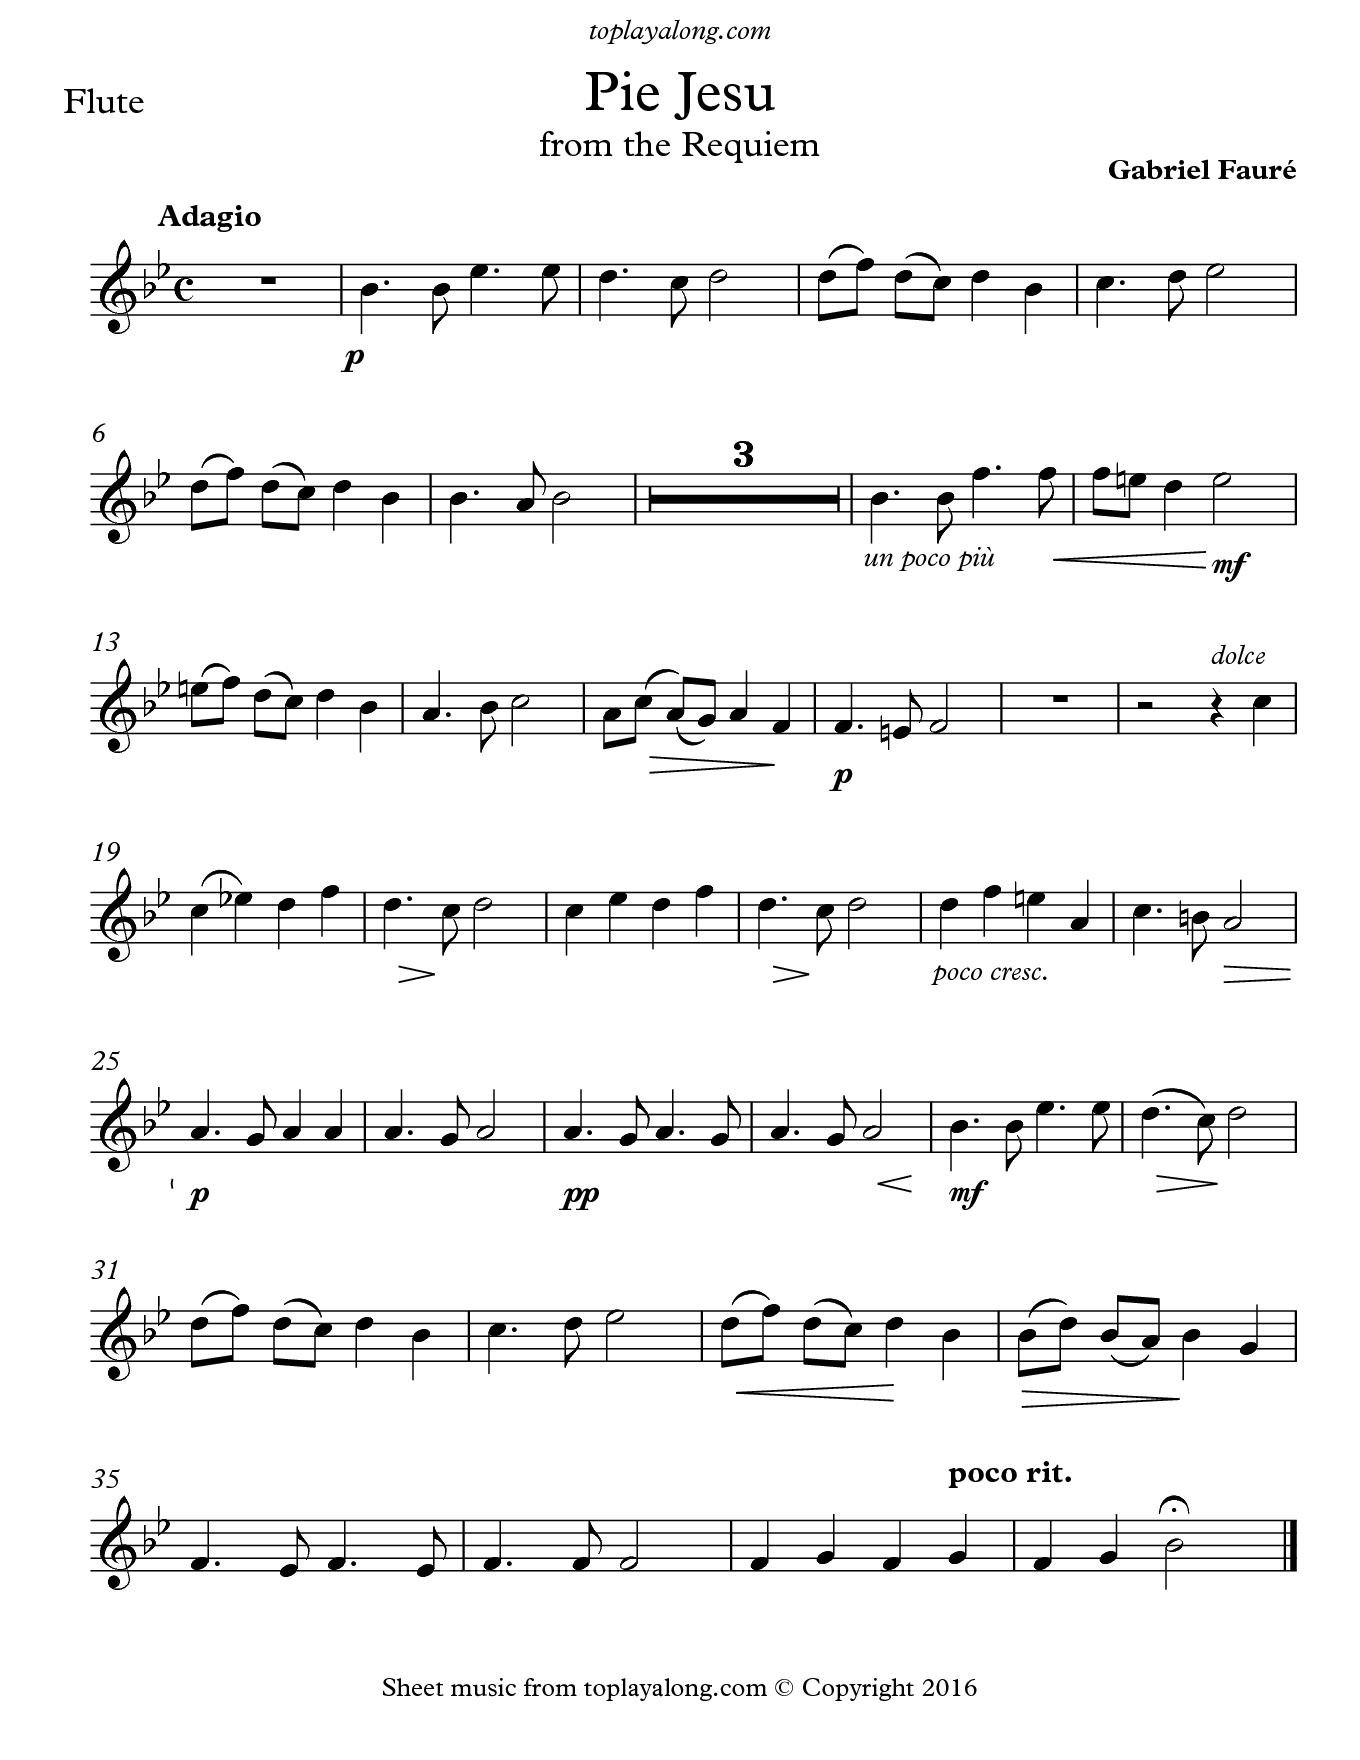 Pie Jesu from the Requiem by Fauré. Sheet music for Flute, page 1.